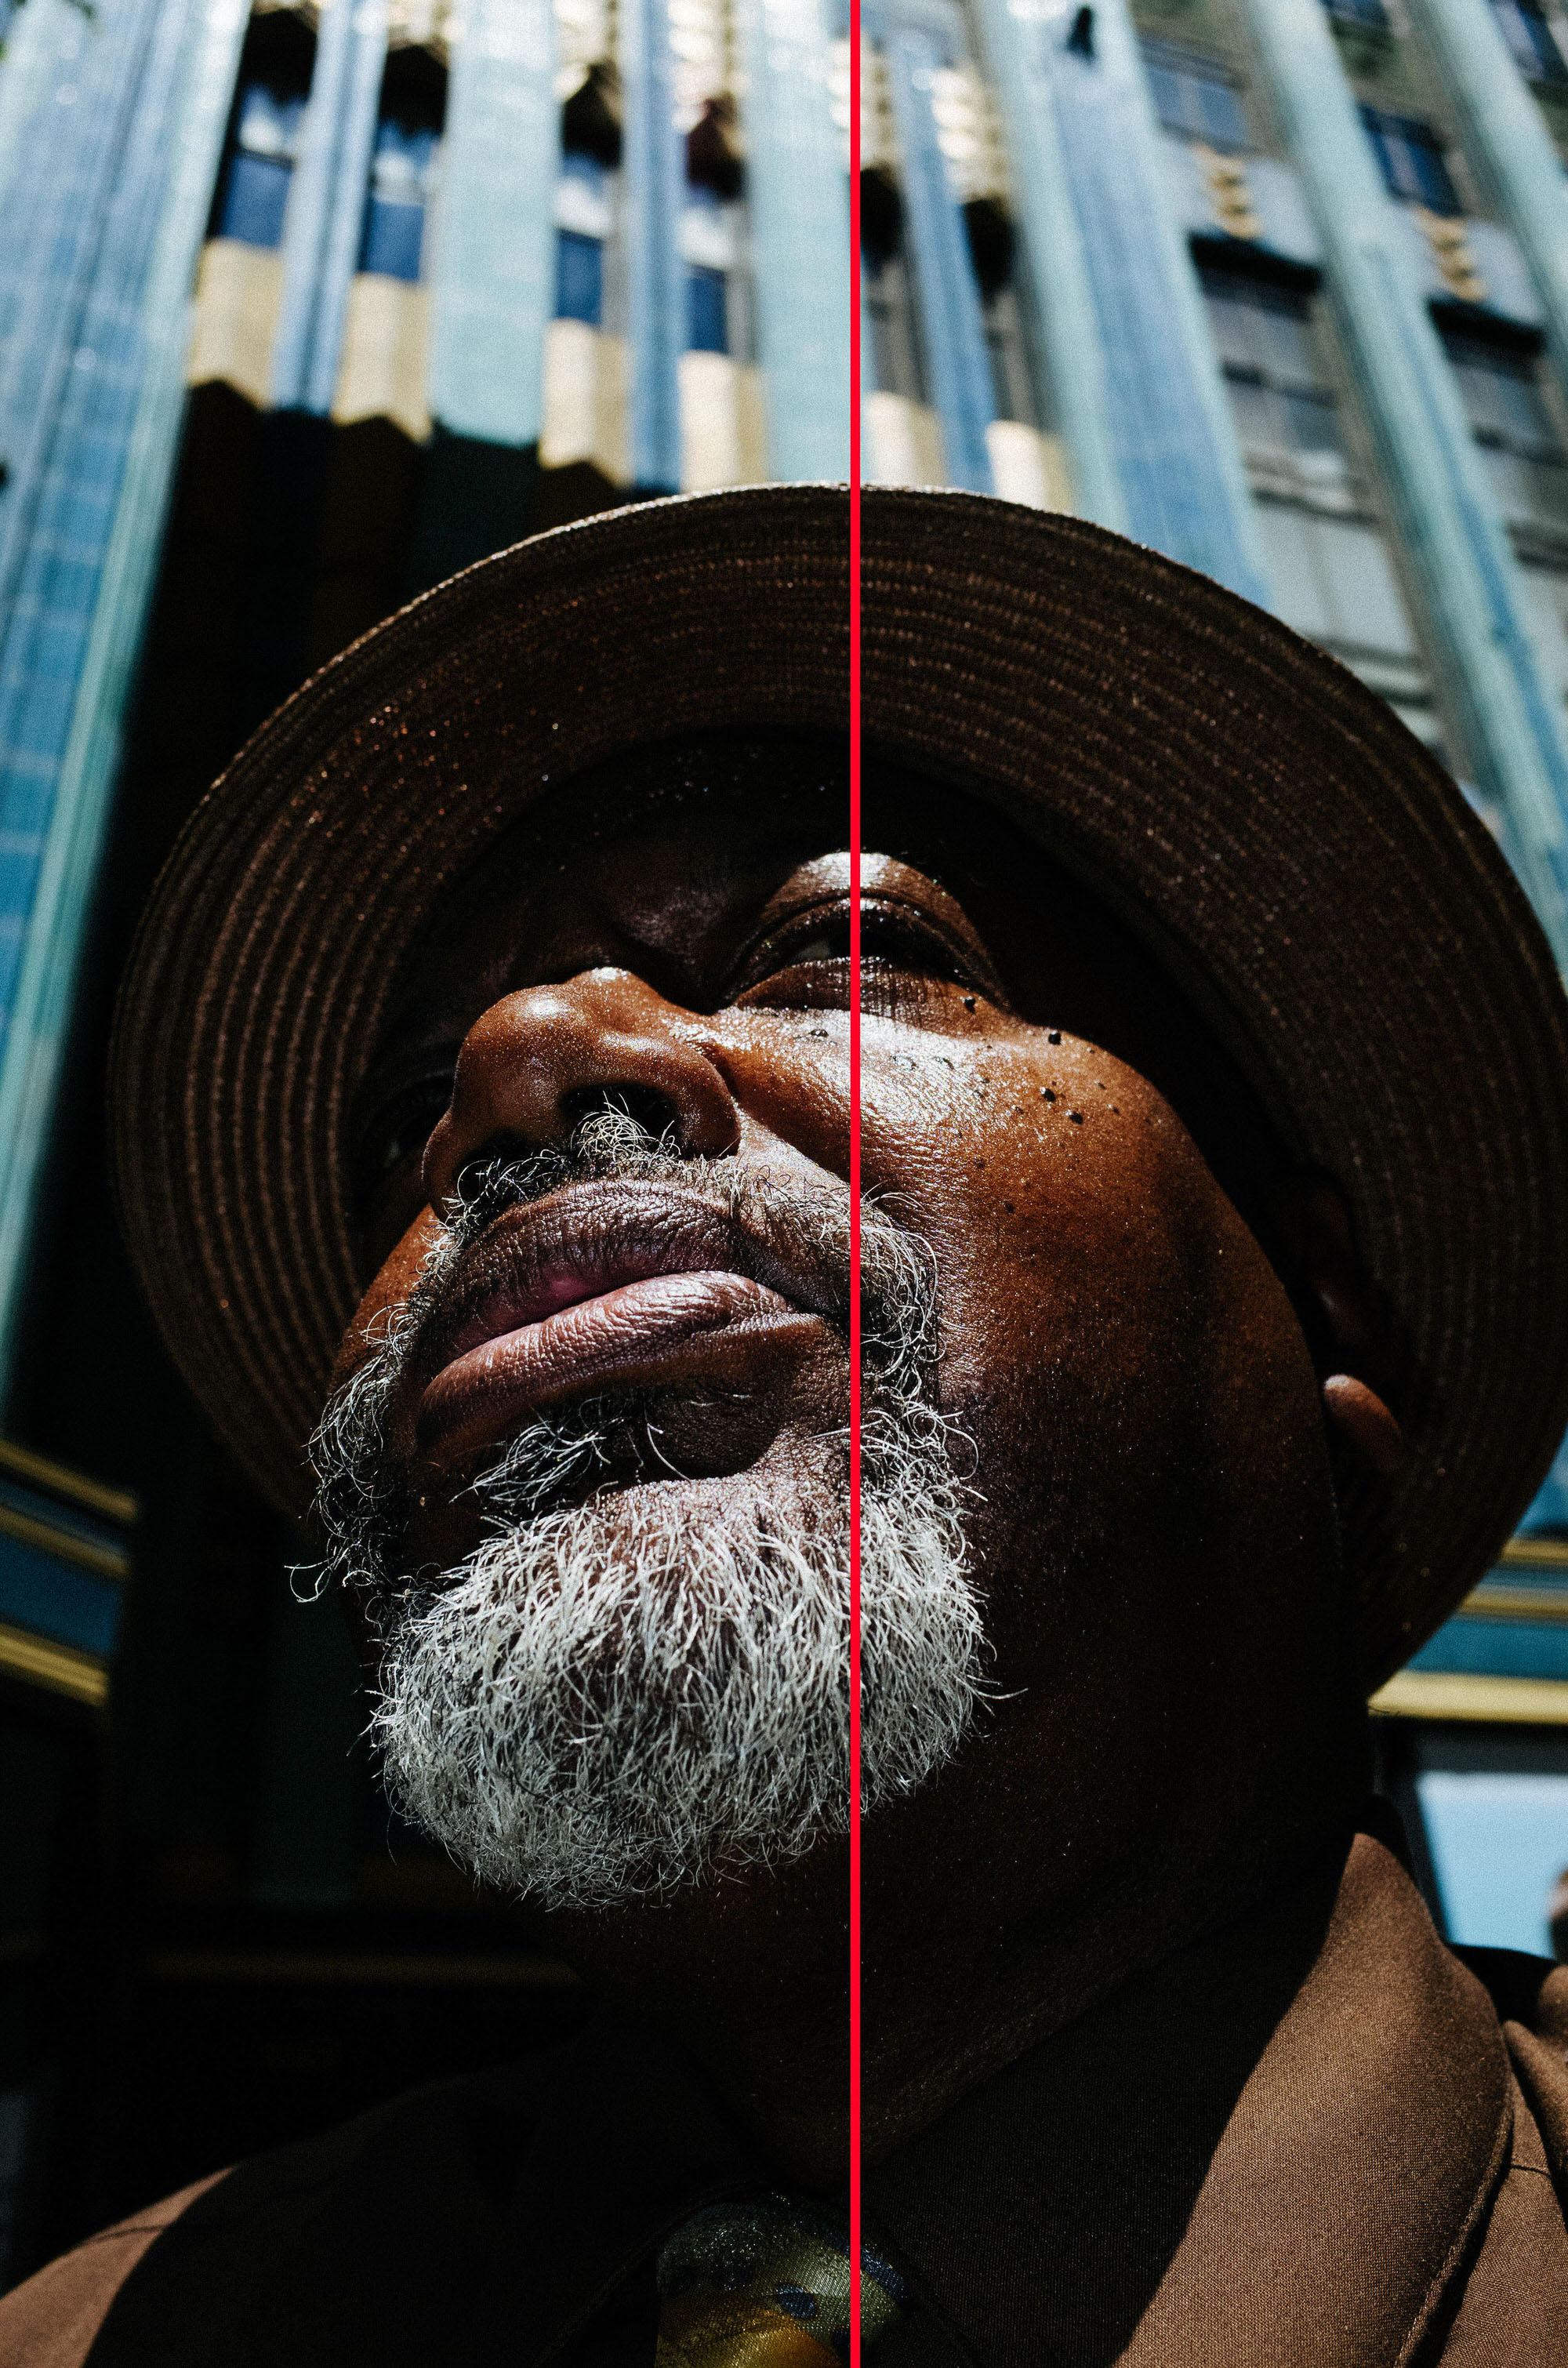 eric kim low angle street photography composition-eye-downtown la-2-1